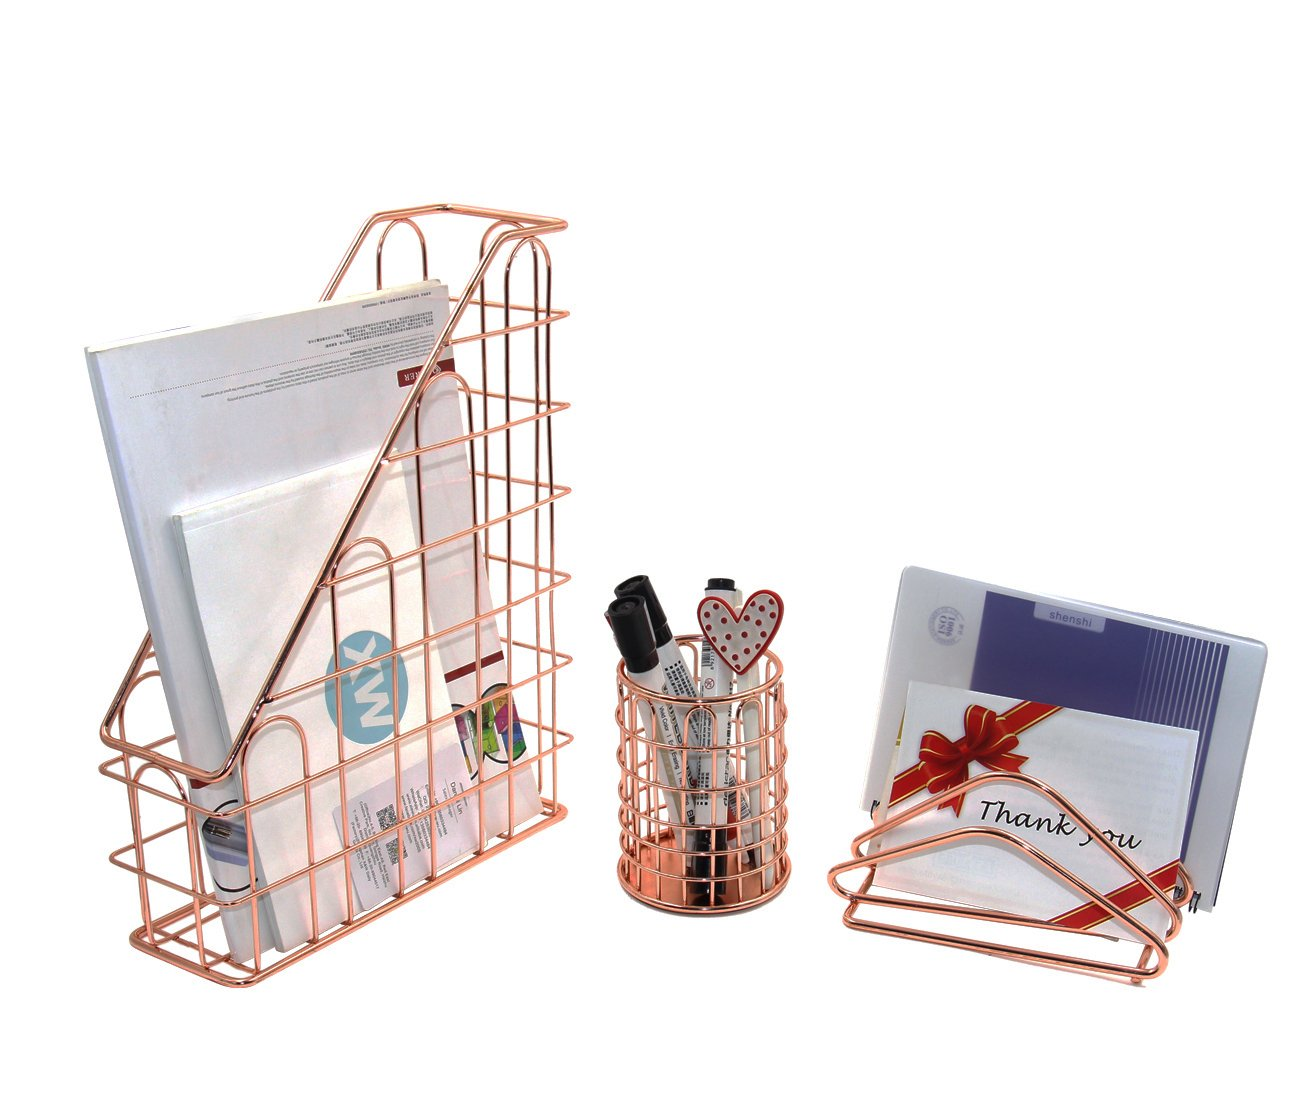 File Folder Racks & File Folder Holders | Amazon.com | Office ...